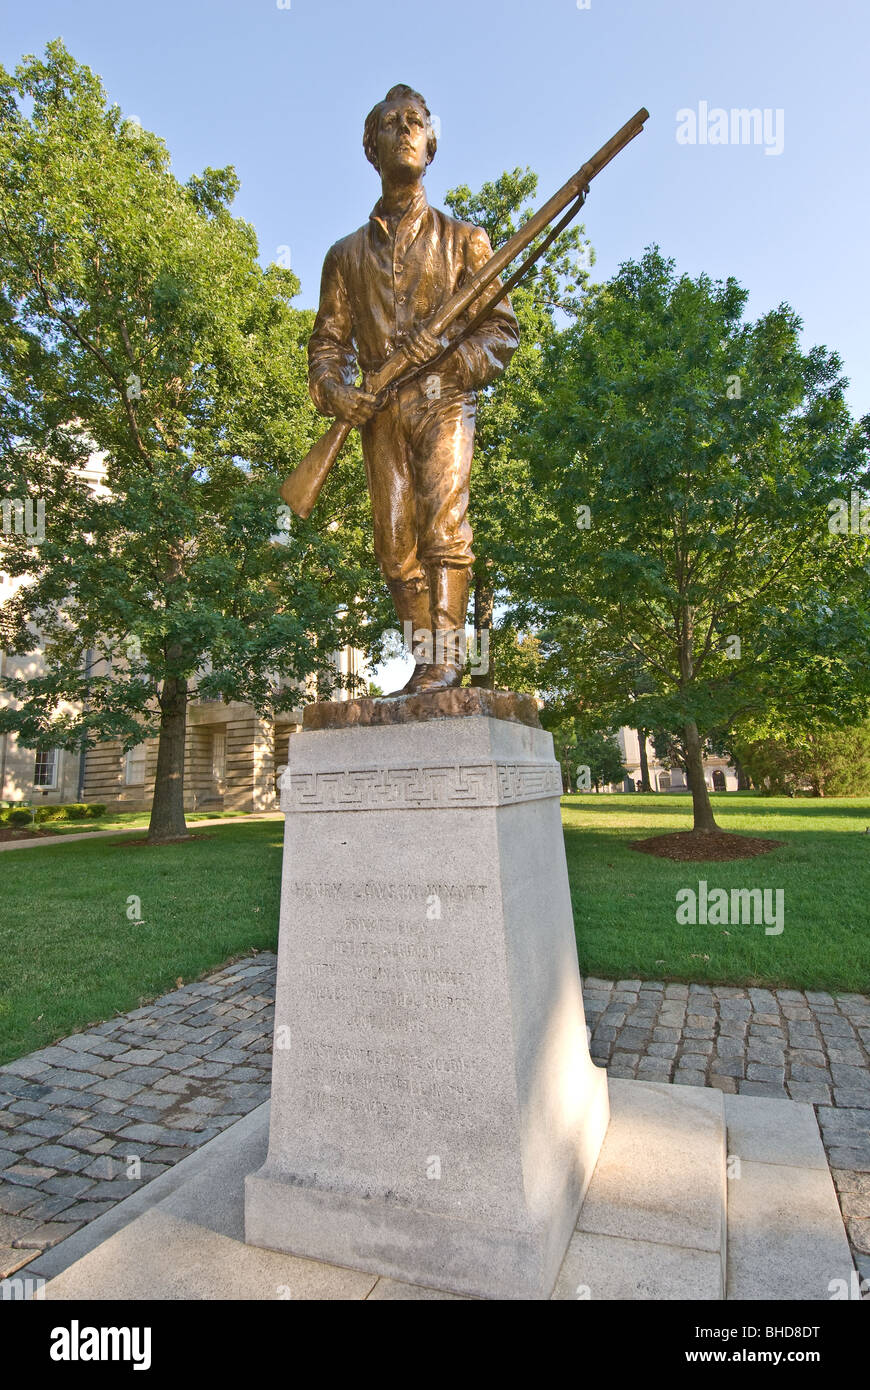 Memorial of Henry Lawson Wyatt, statue on grounds of State Capitol, Raleigh, North Carolina - Stock Image